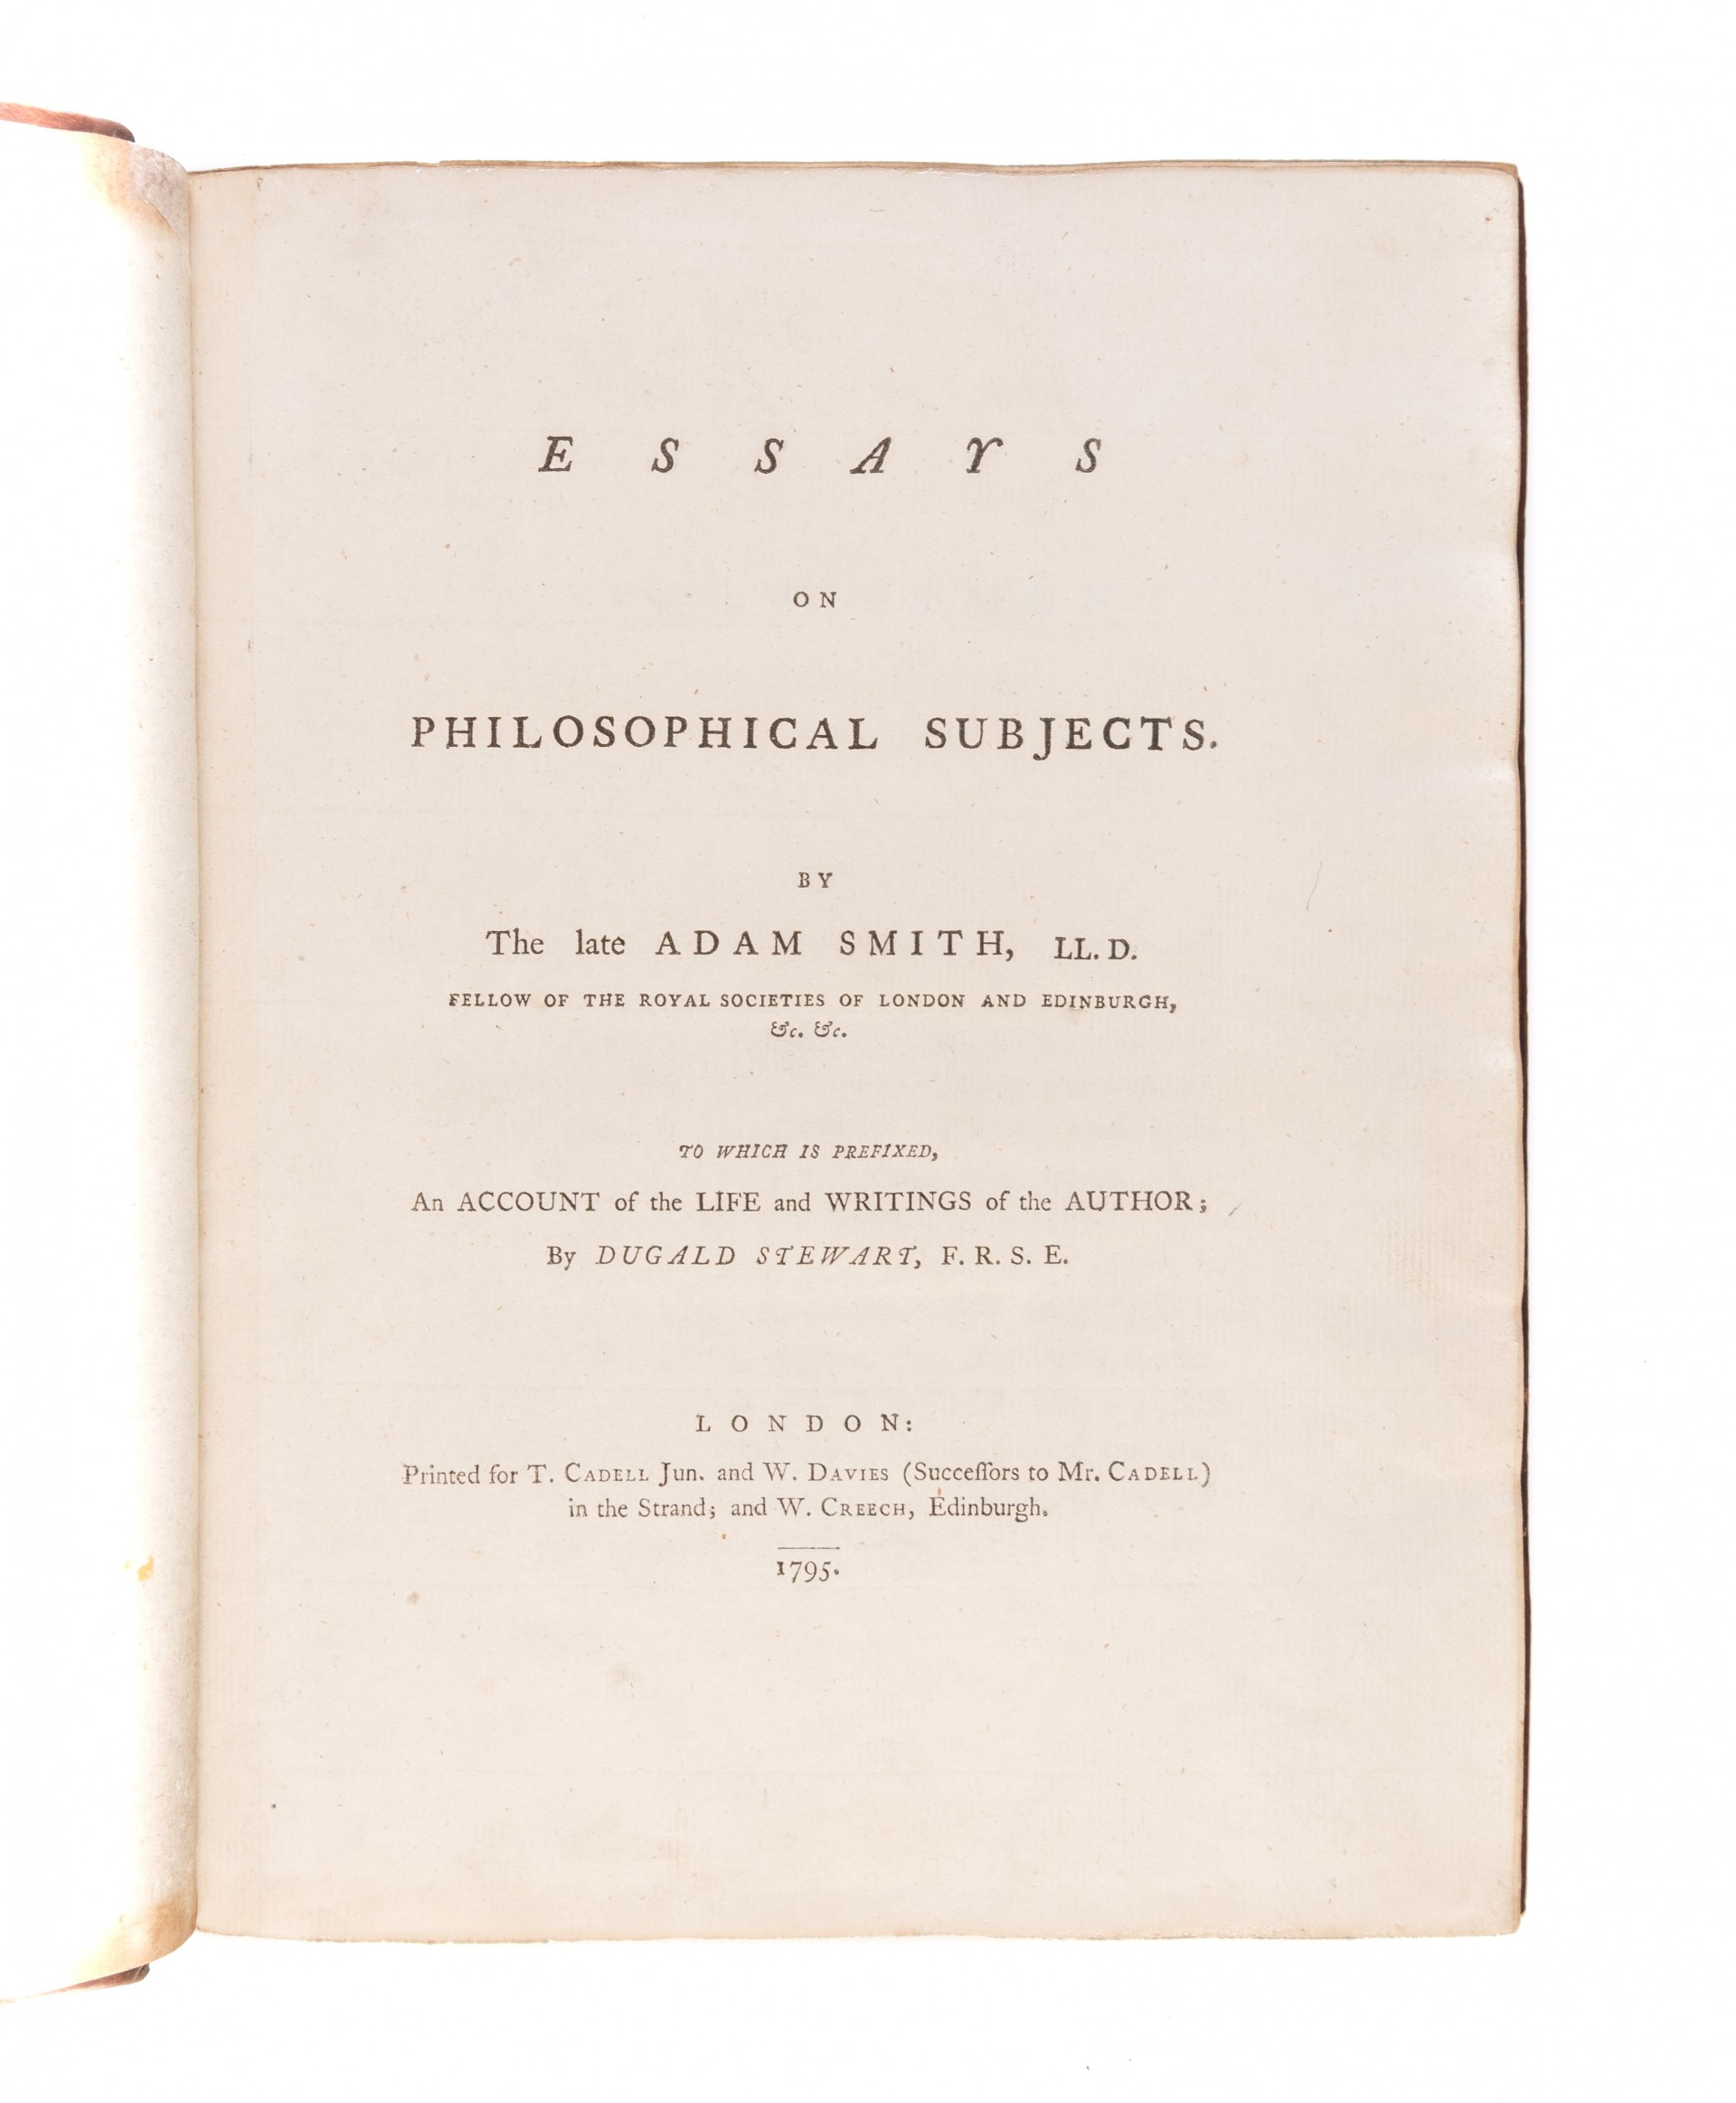 004 Essays On Philosophical Subjects 55036 01 Essay Best Summary Adam Smith 1920